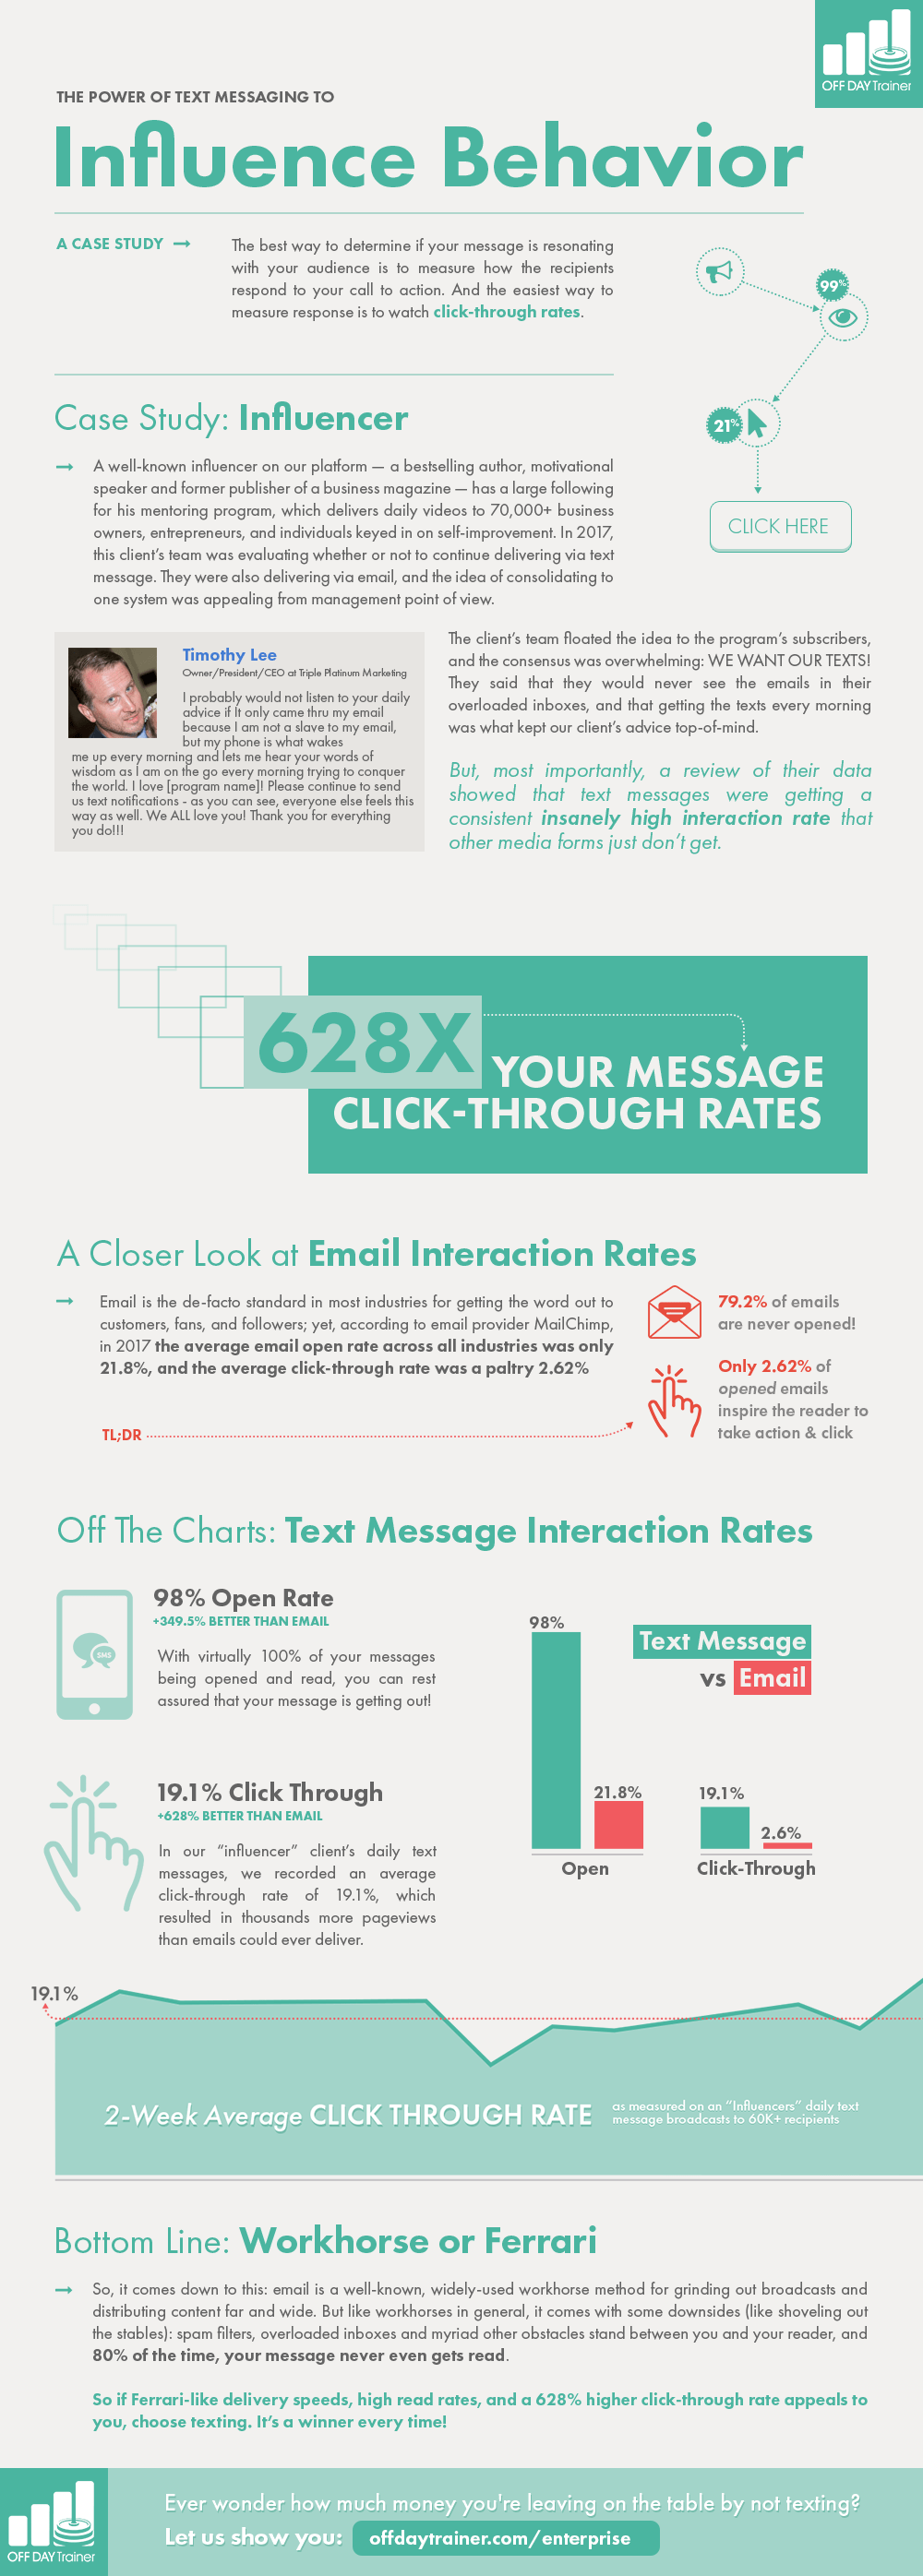 628x your click-through rate